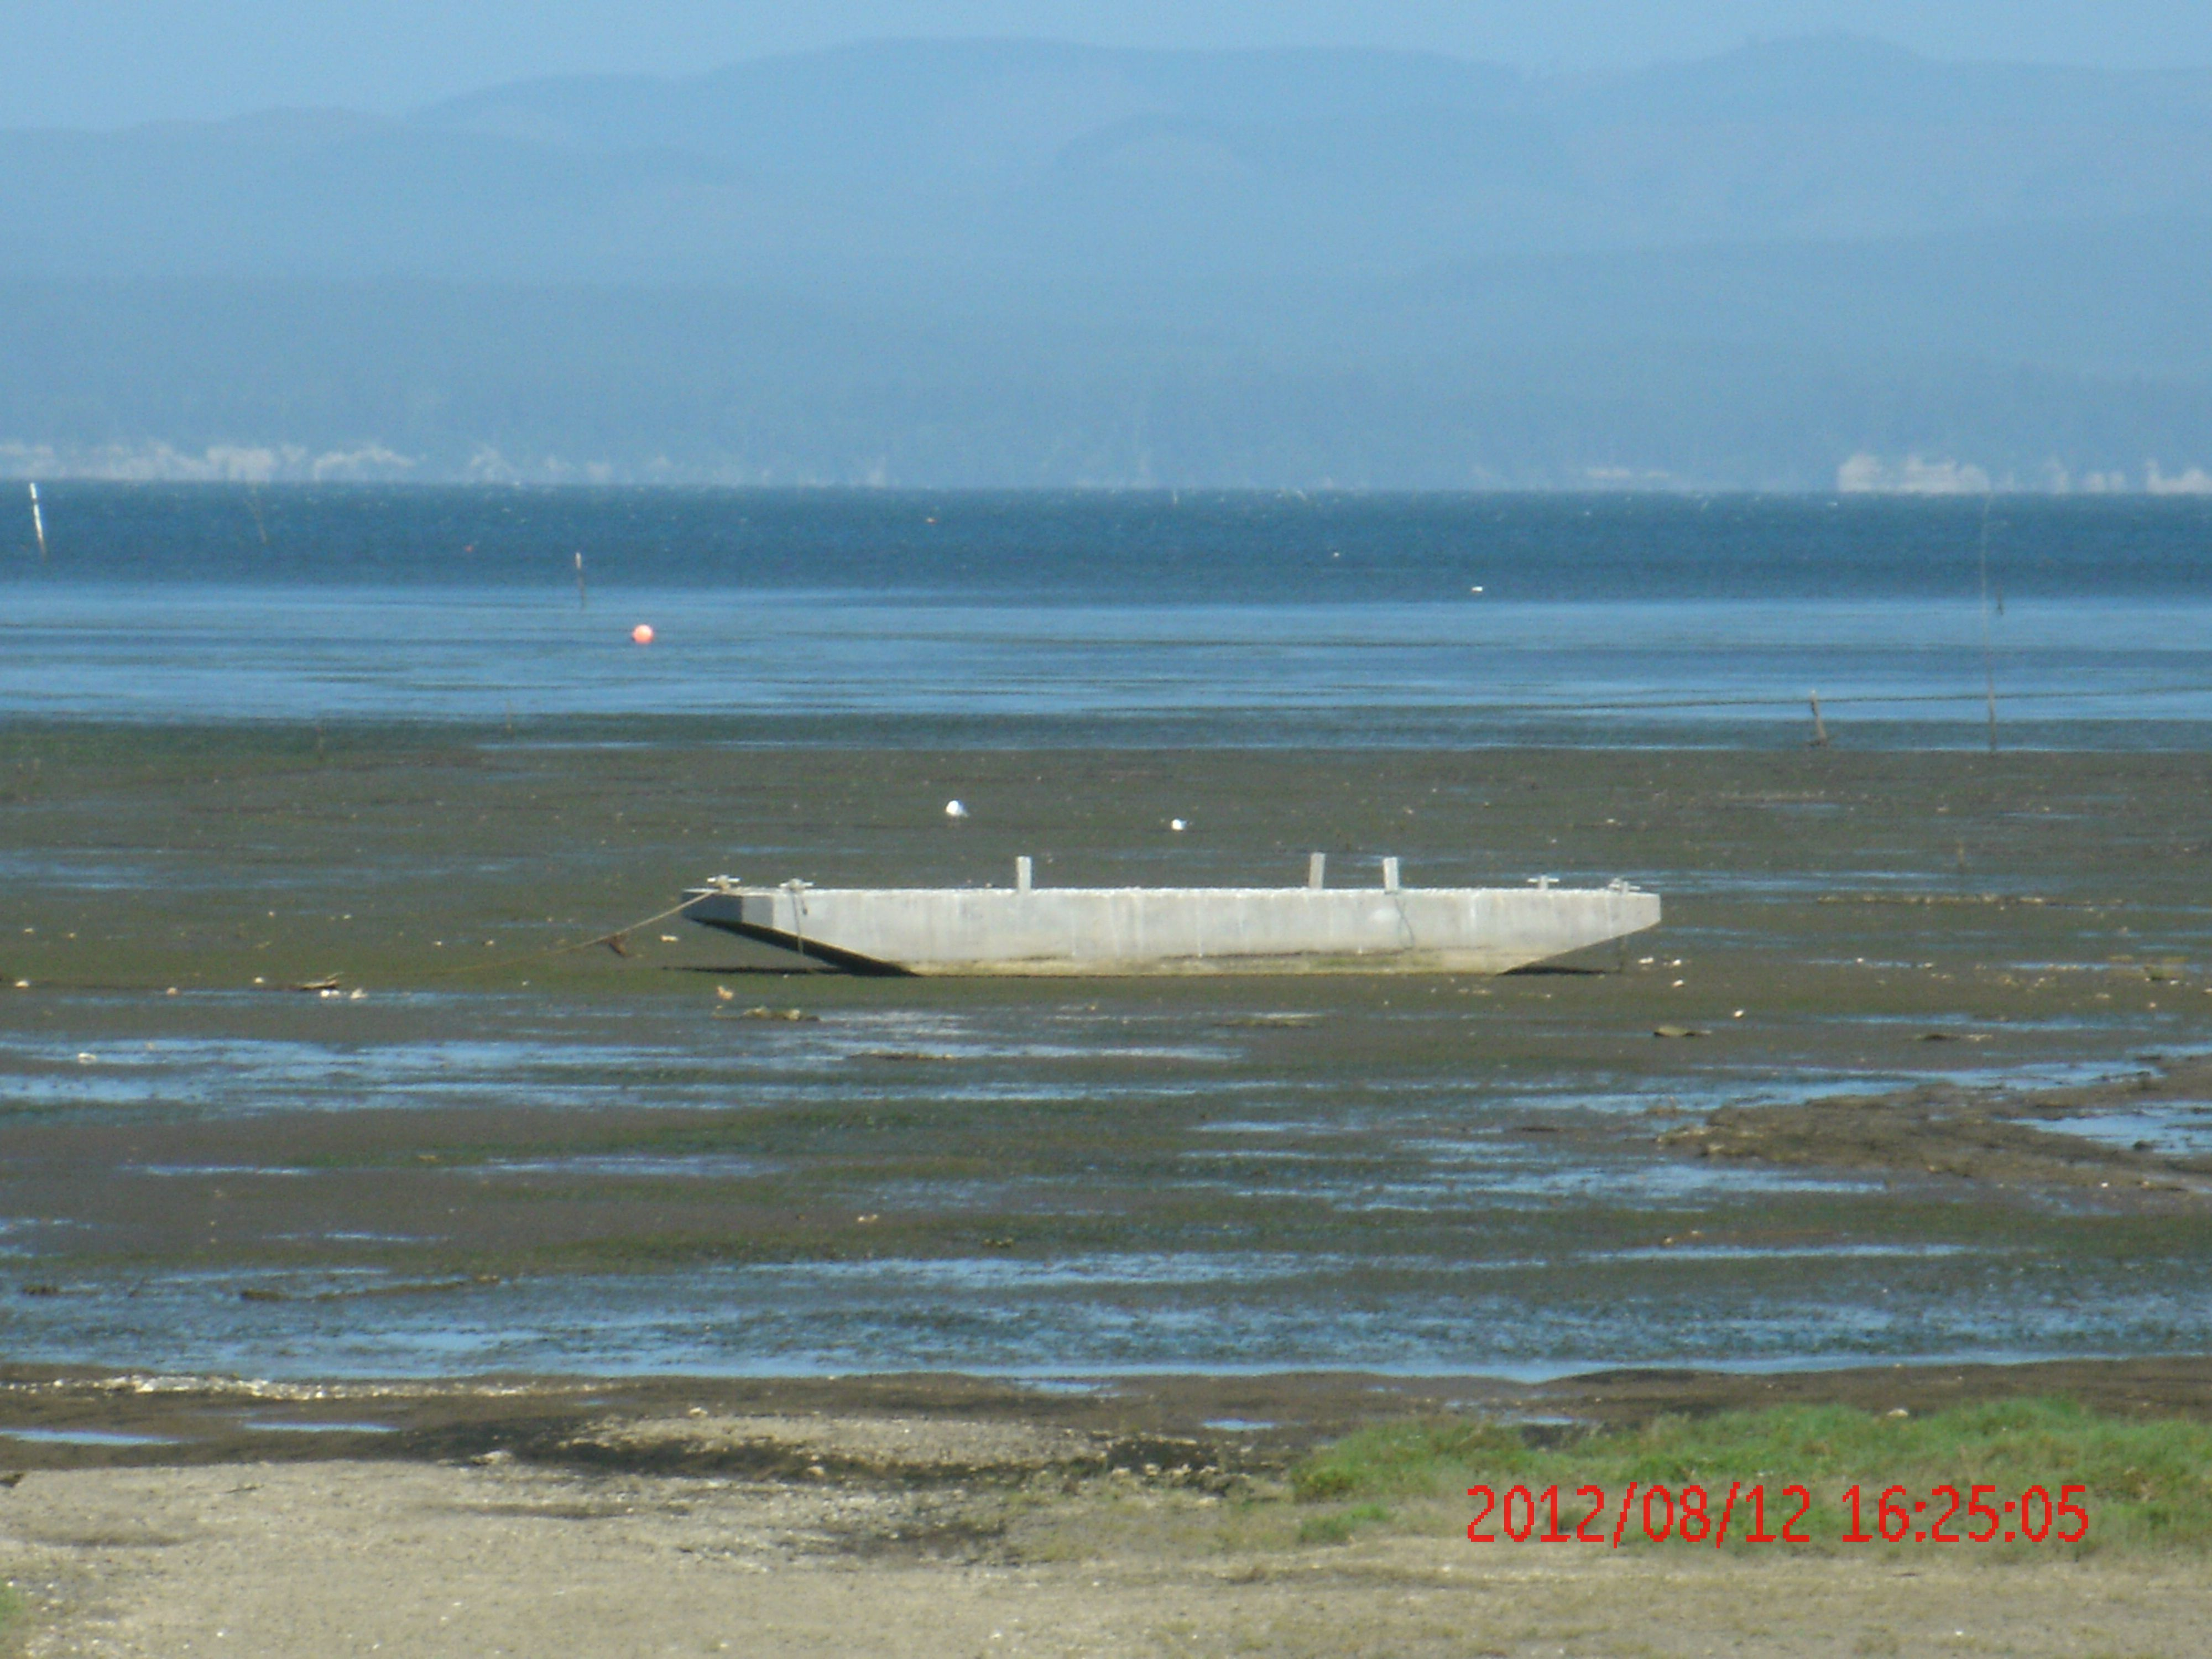 Low tide at Oysterville, Washington